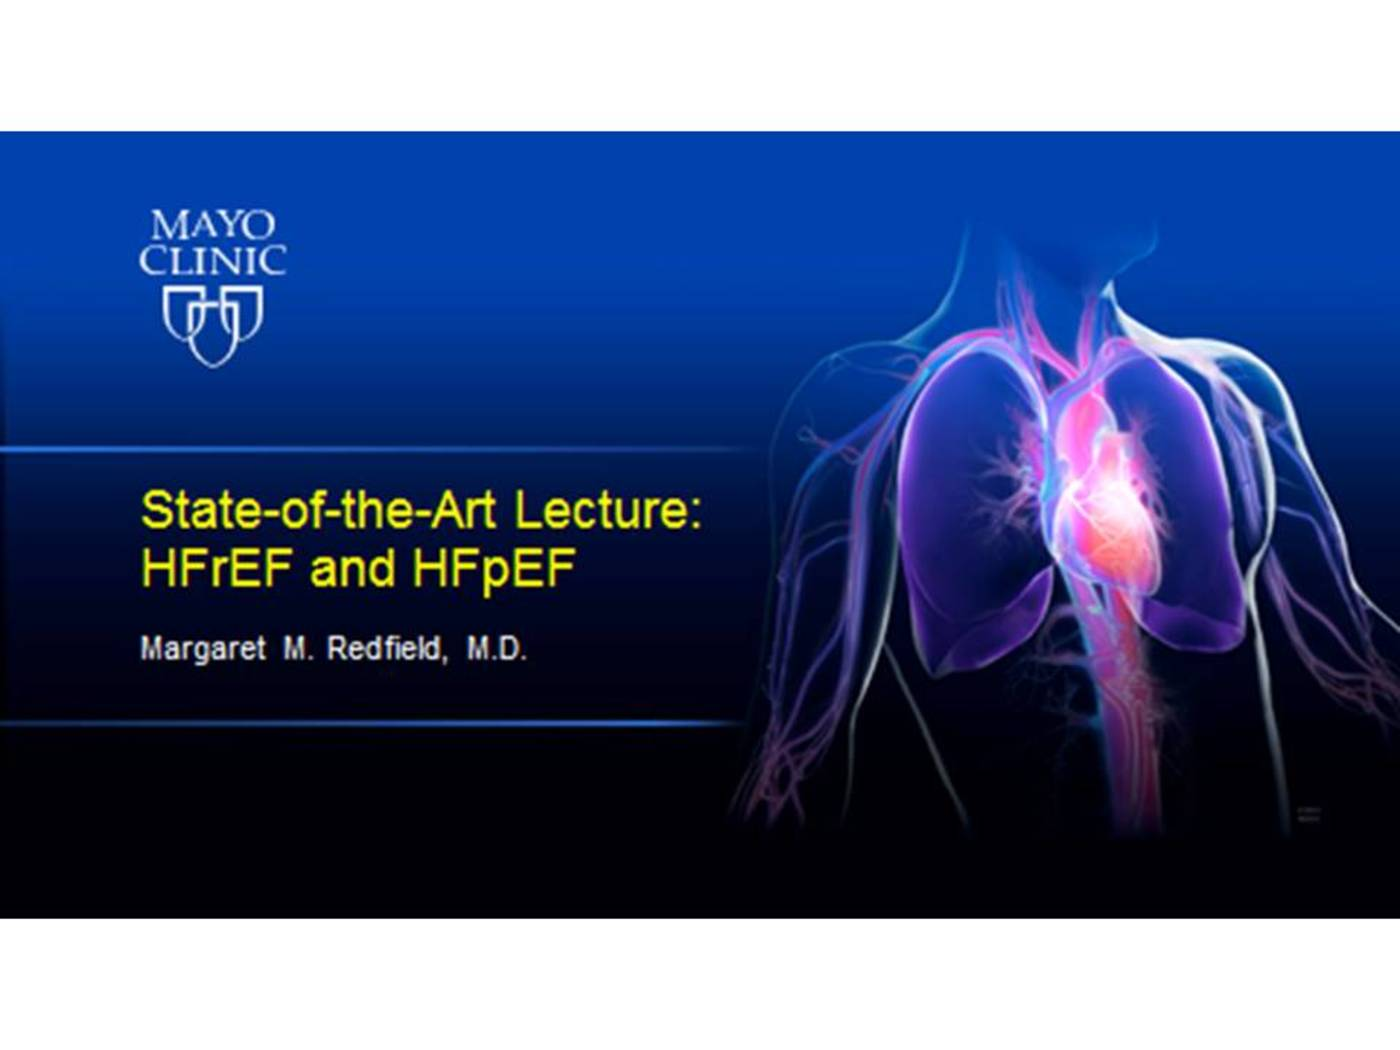 State-of-the-Art Lecture: HFrEF and HFpEF